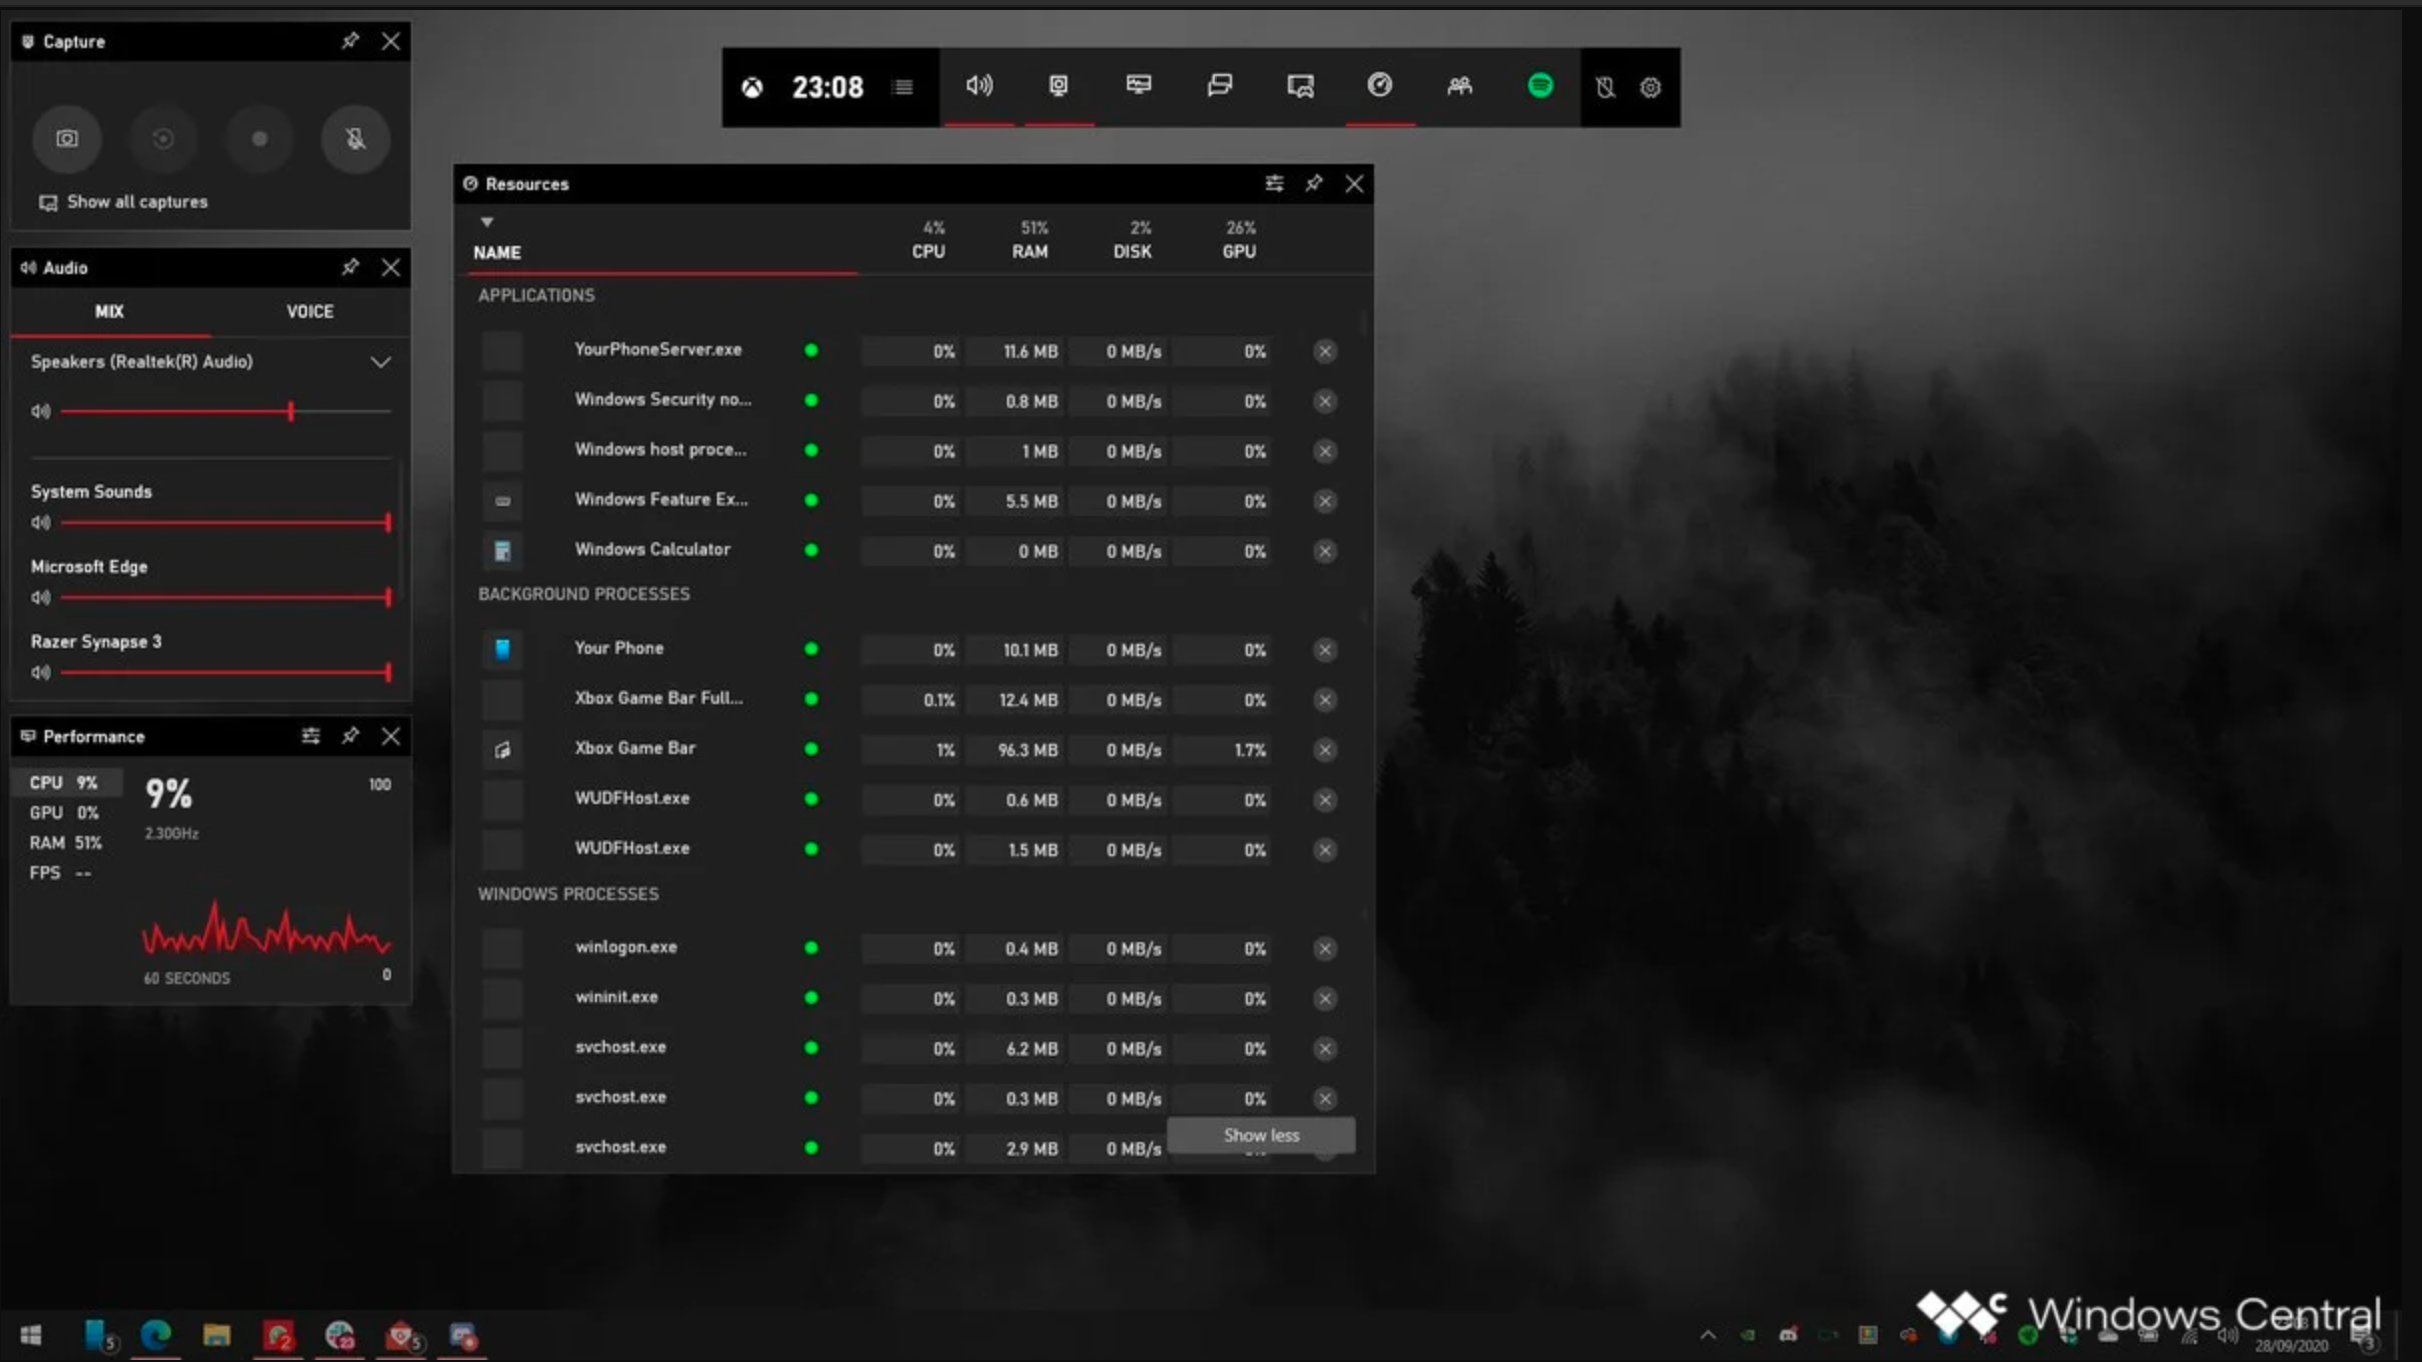 Xbox Game Bar Task Manager